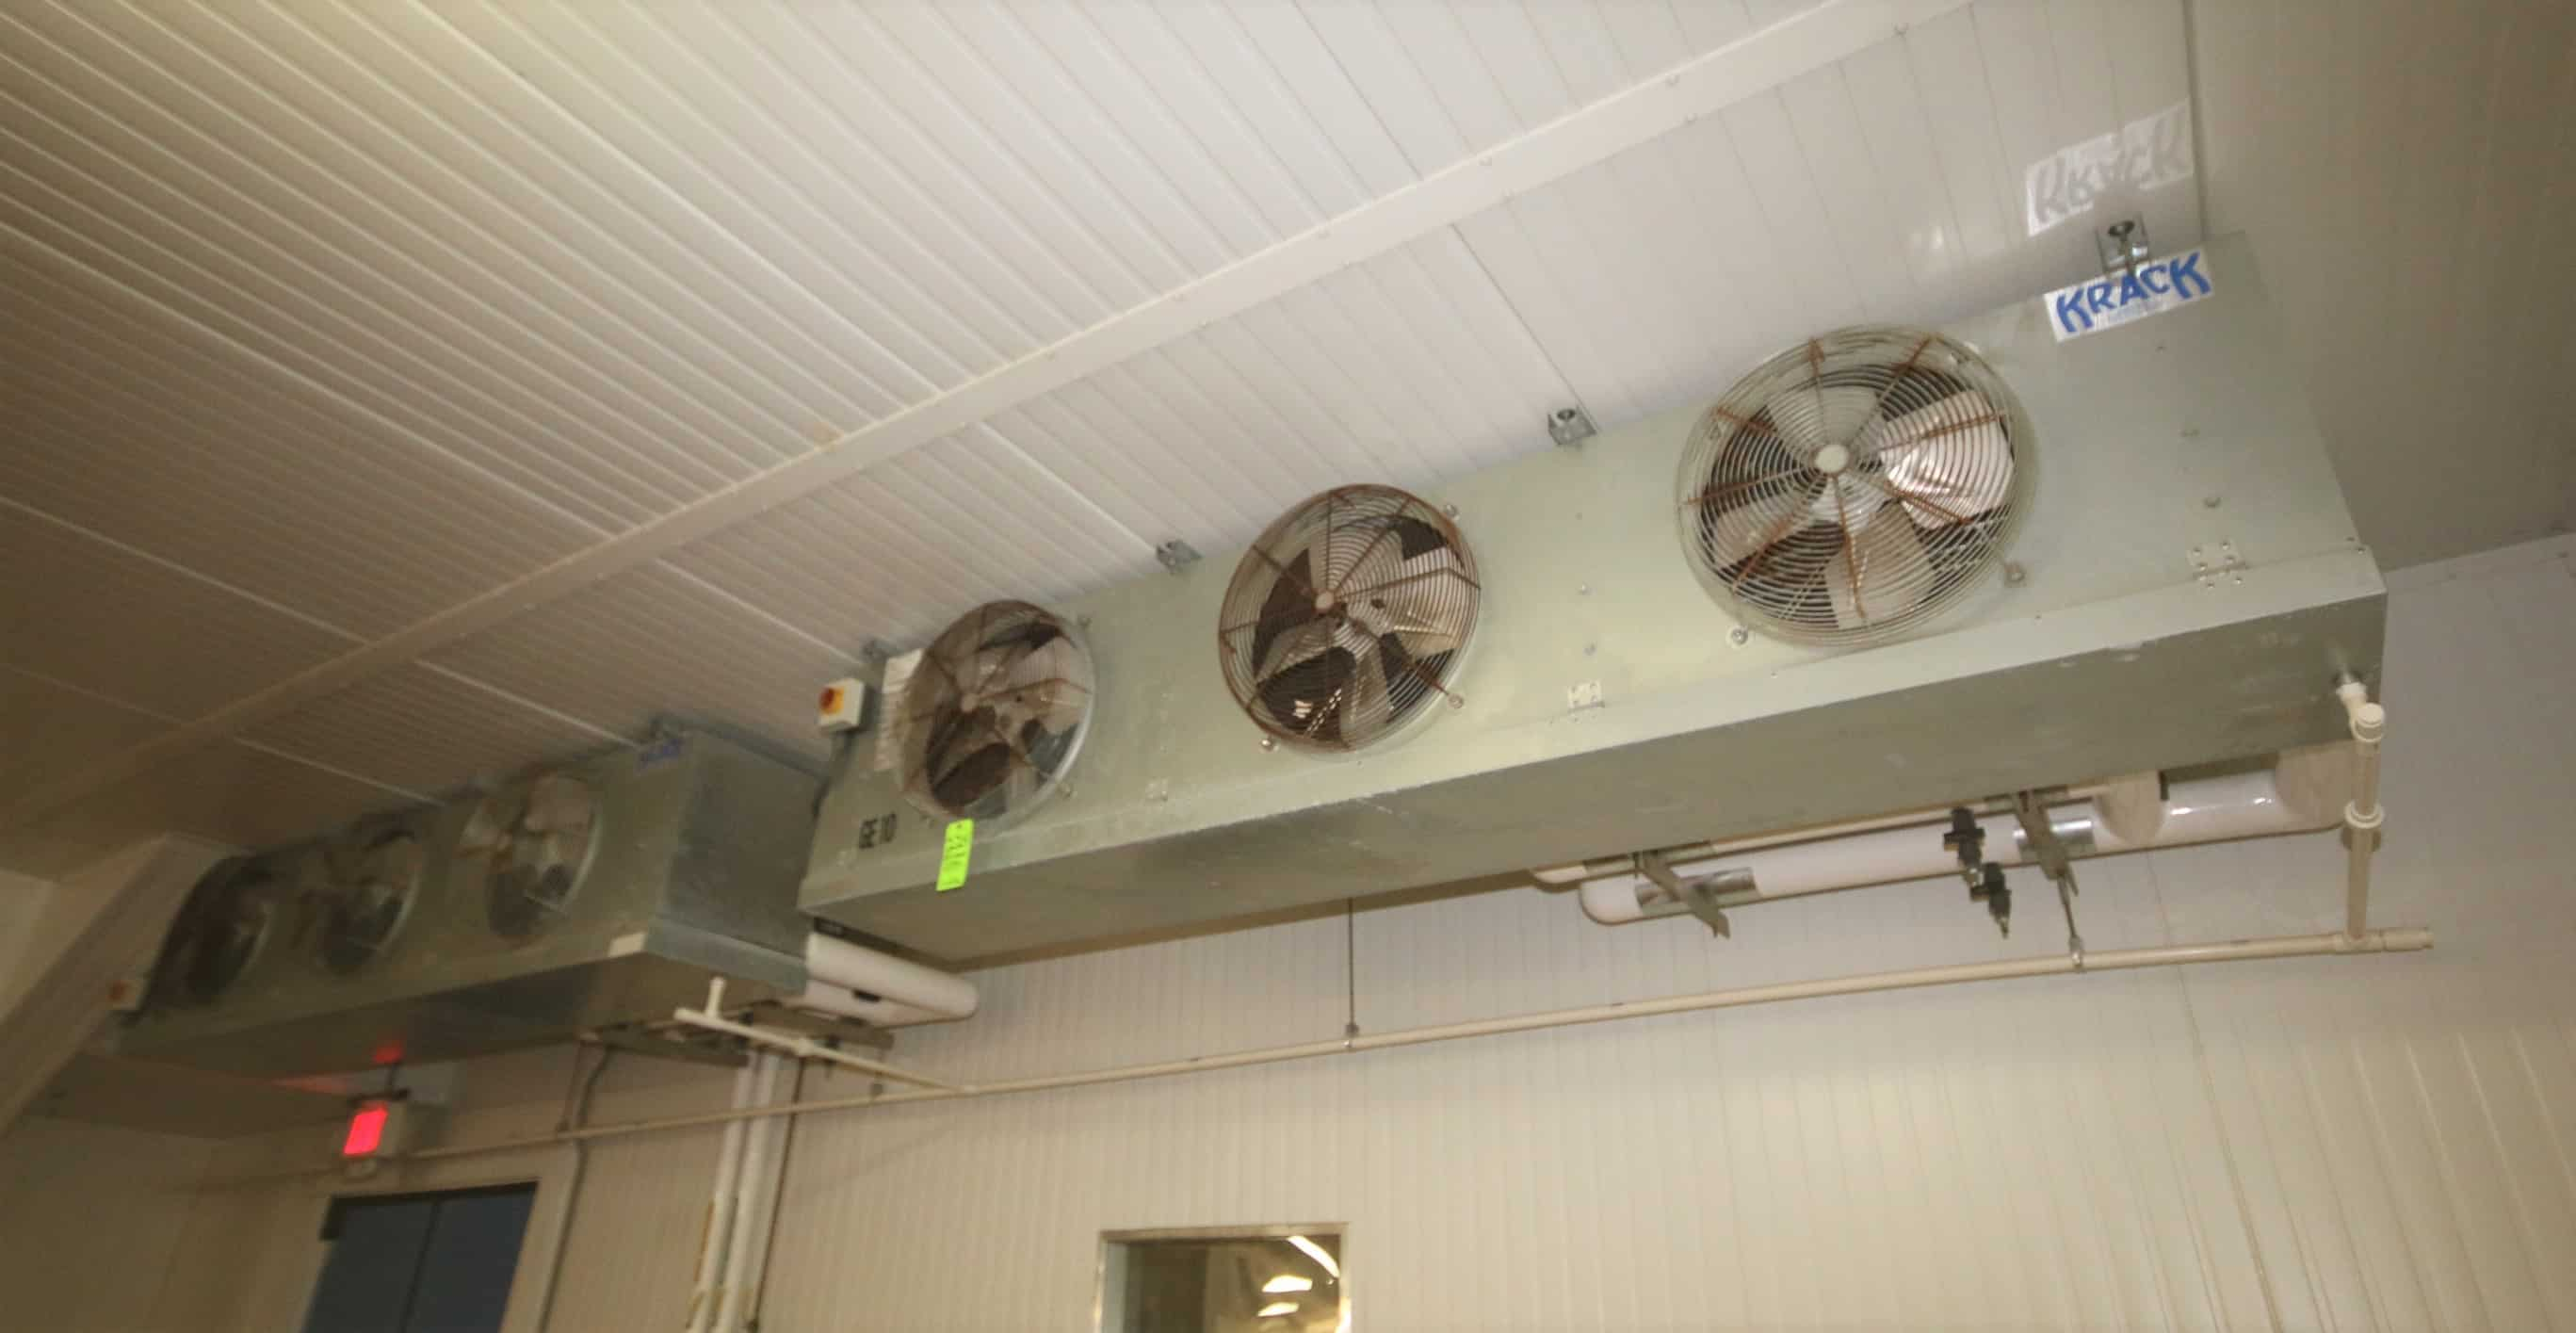 2010 Krack 3-Fan Evaporator/Blowers, Model MS36B-806-CM-D-ST-ST-ST-ST-1